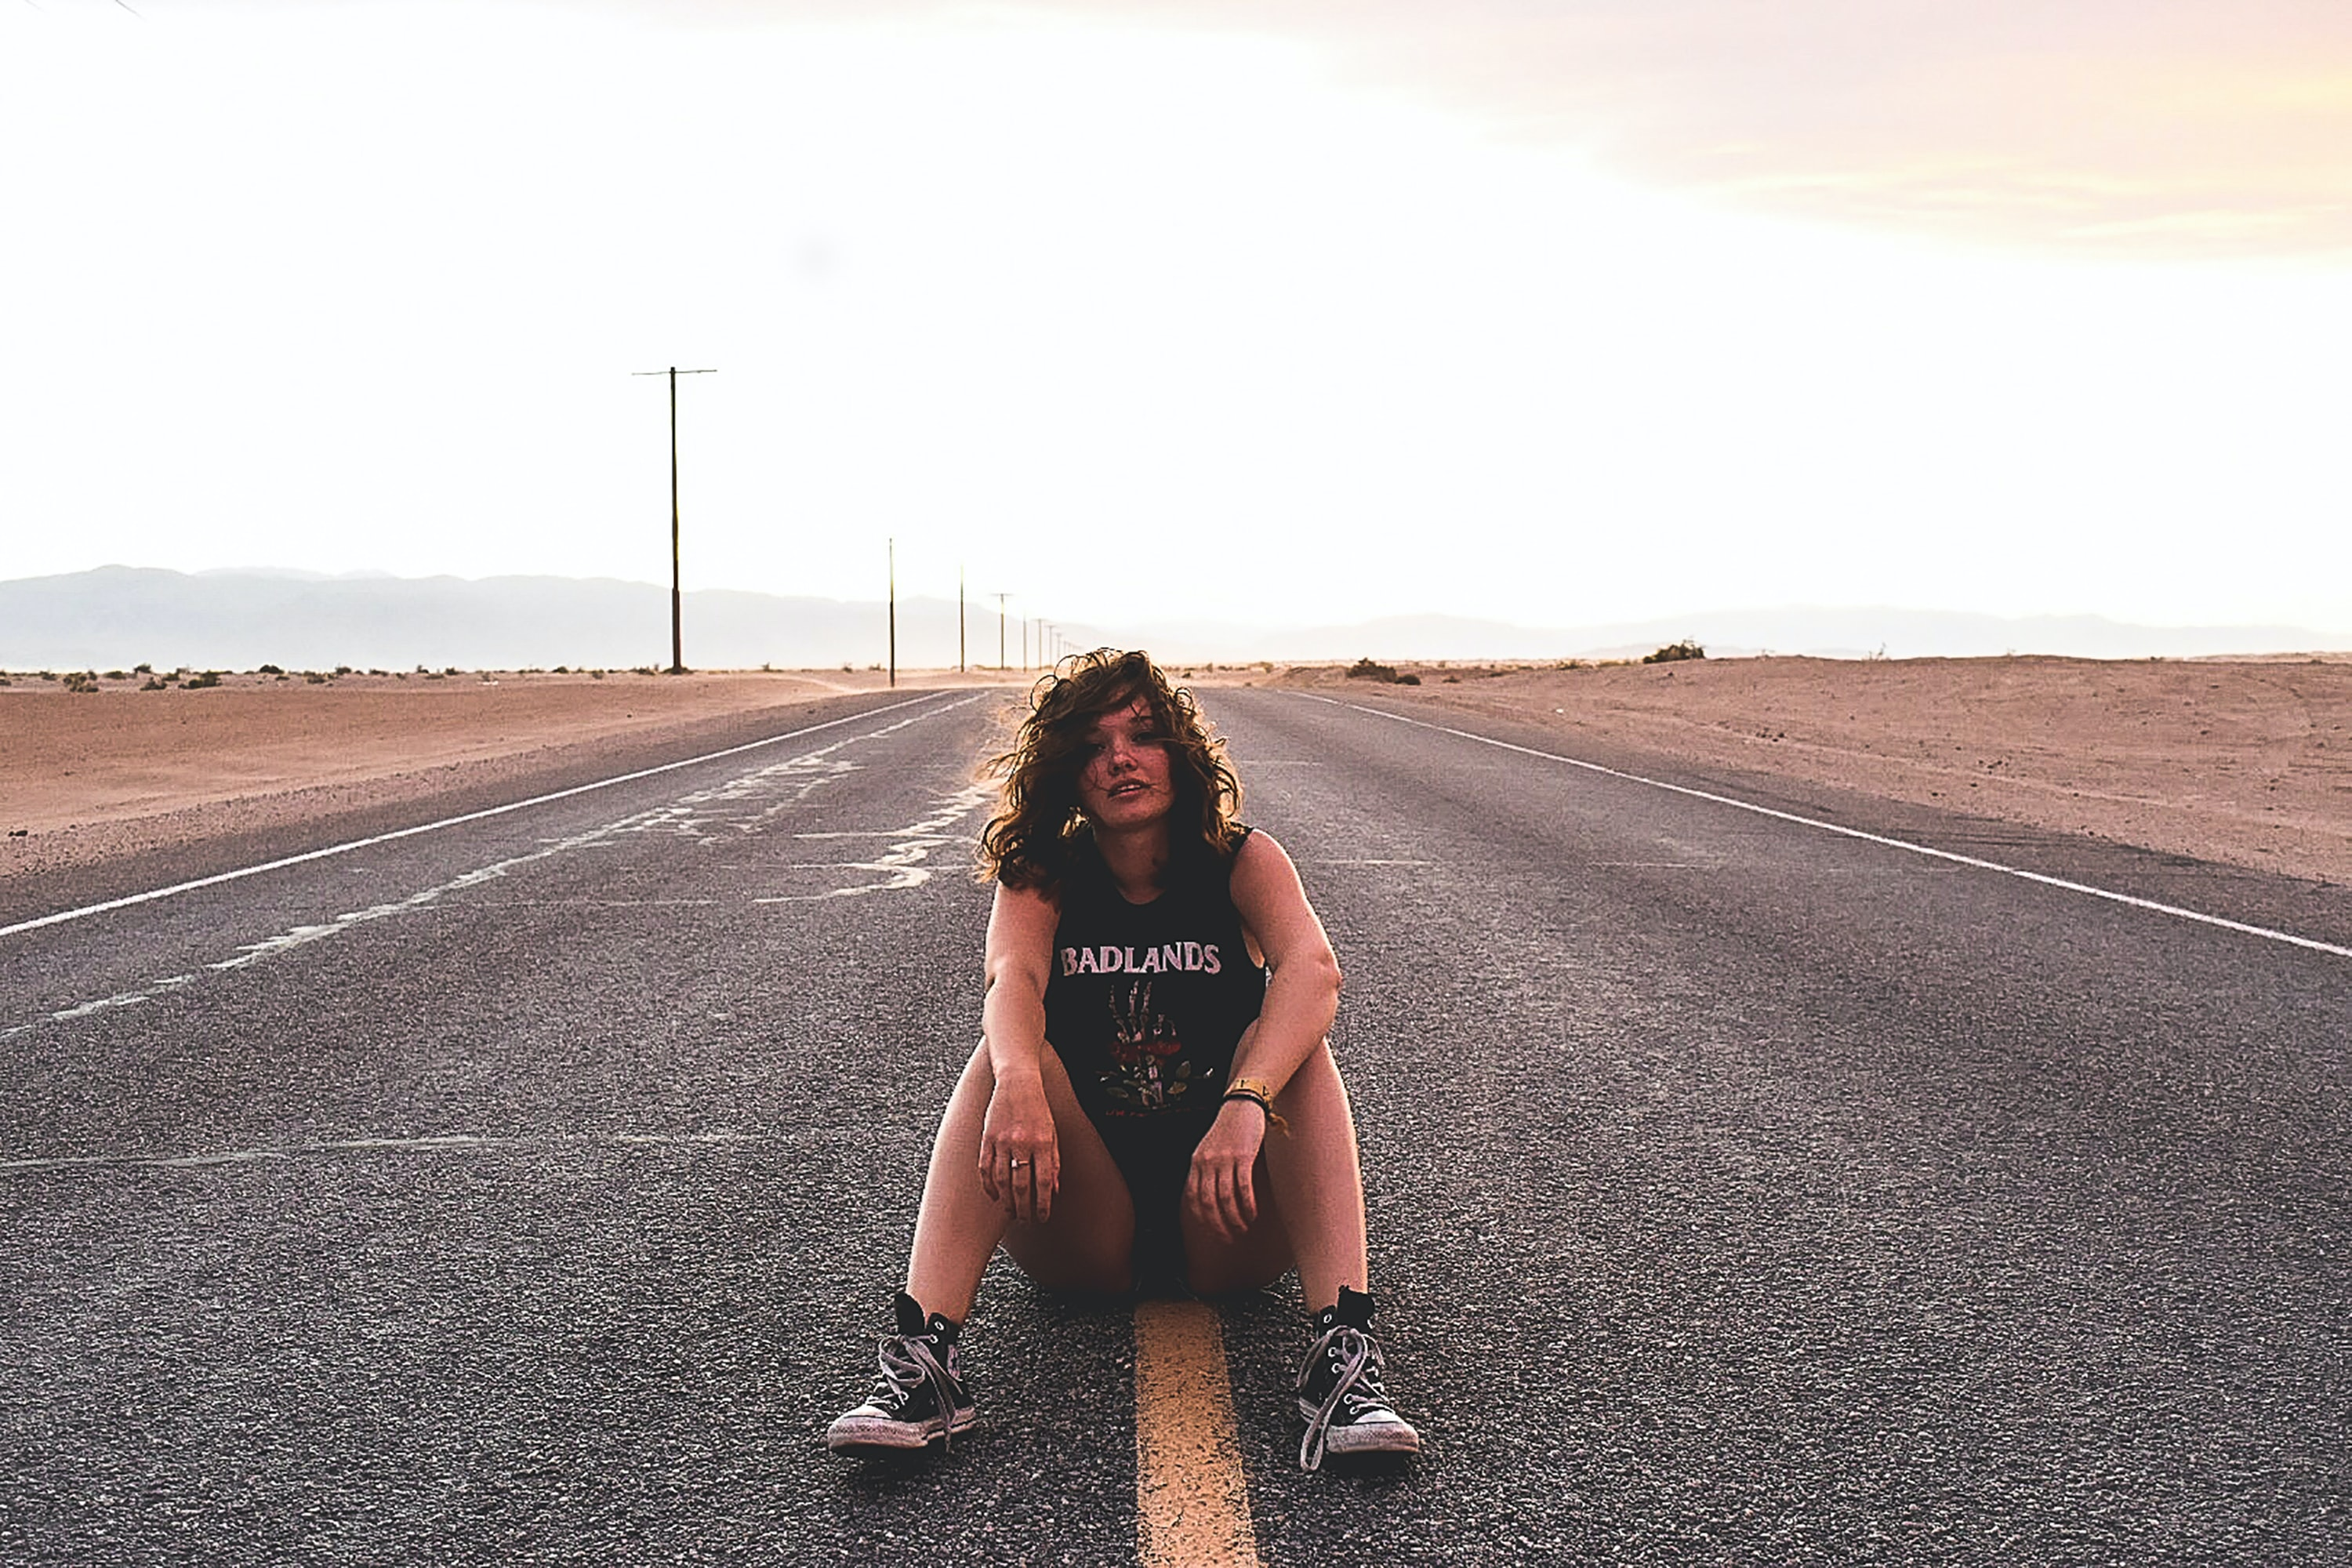 A rocker chick sitting on the yellow line in the middle of a road.